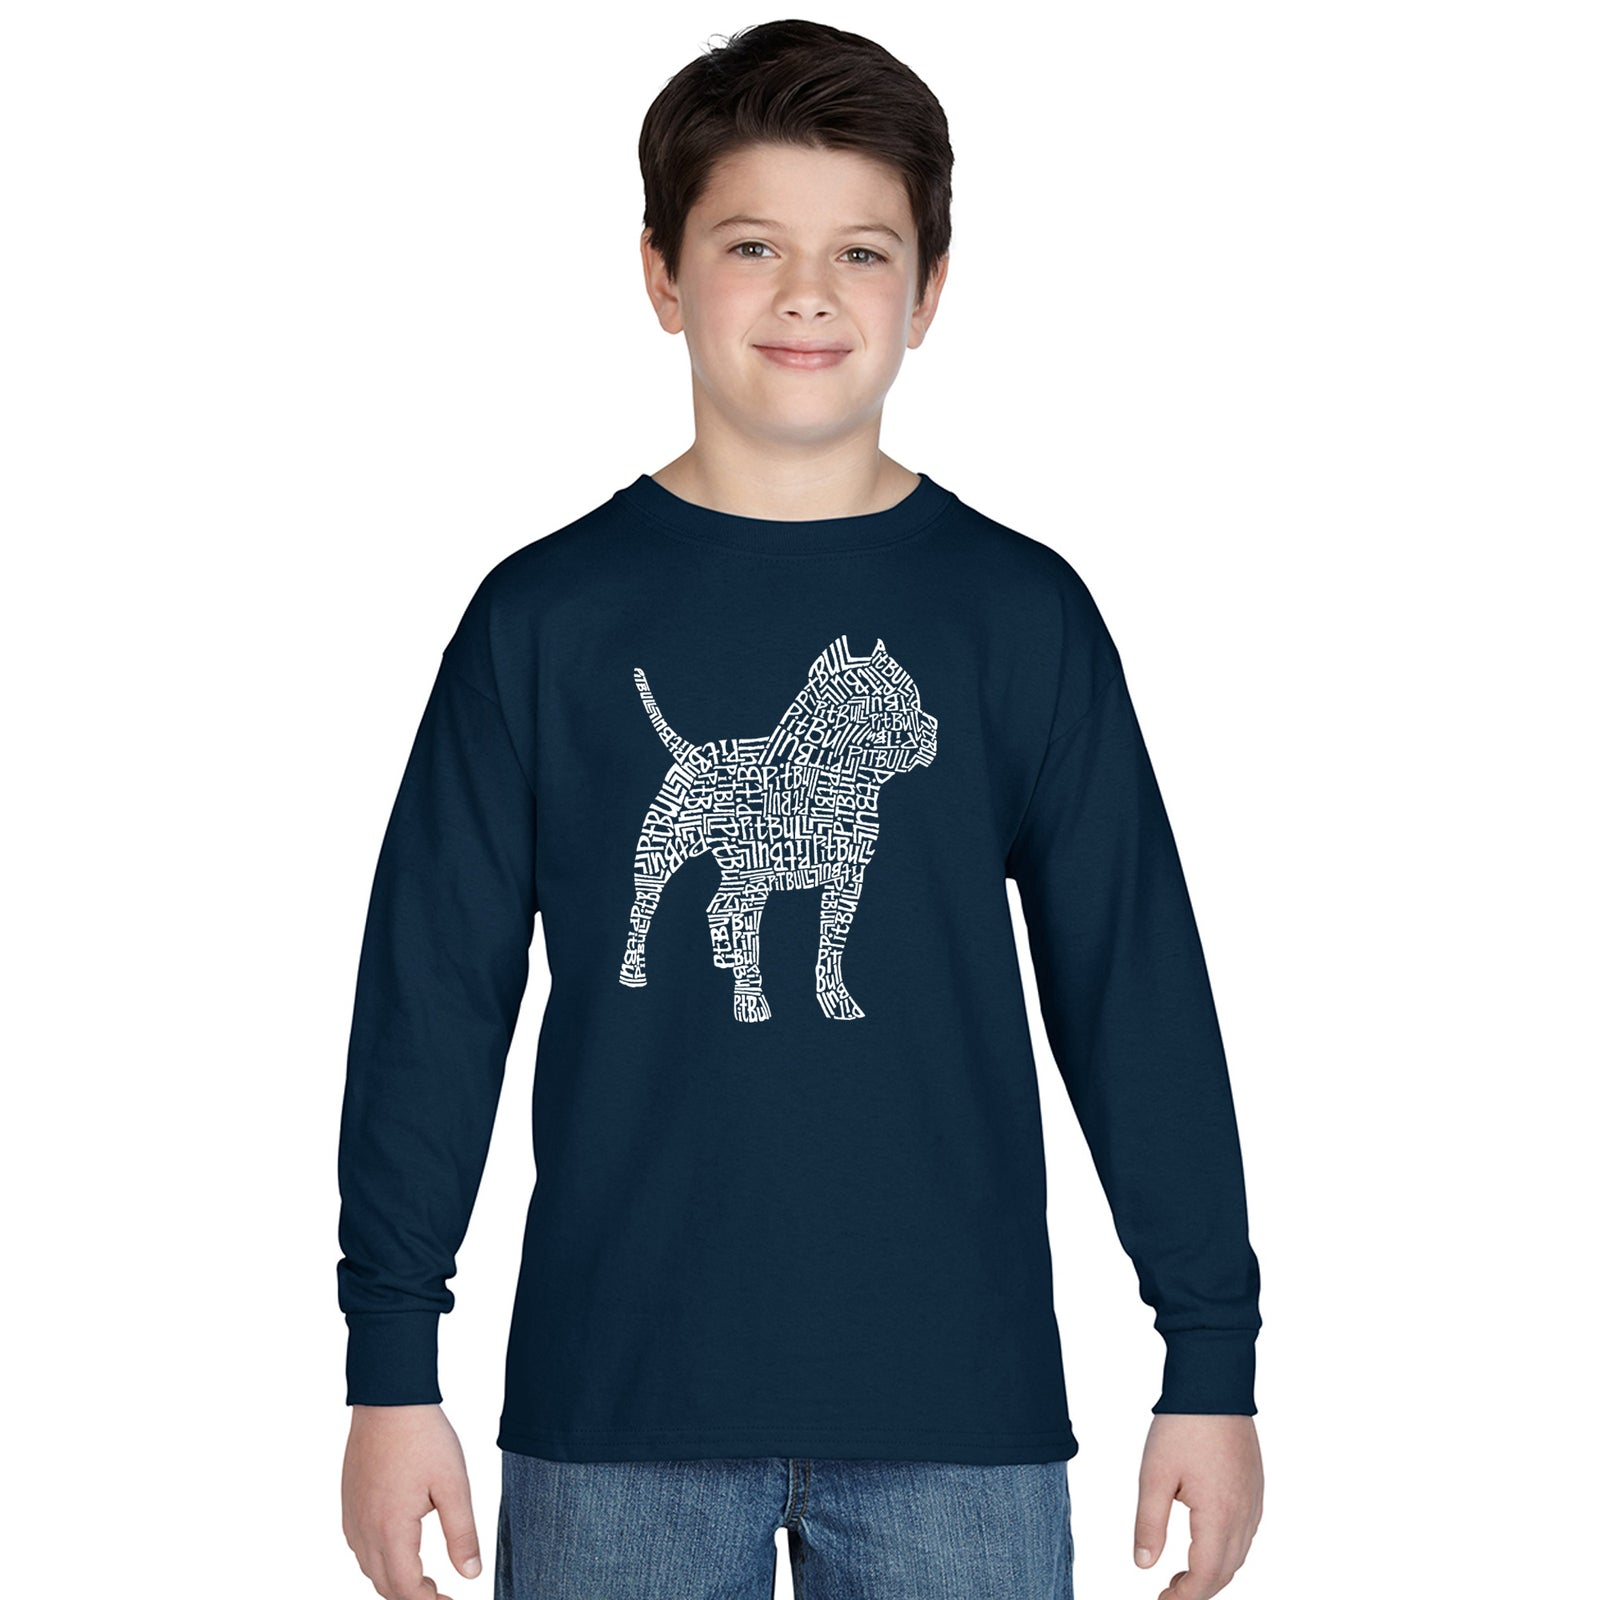 Boy's Long Sleeve - Pitbull